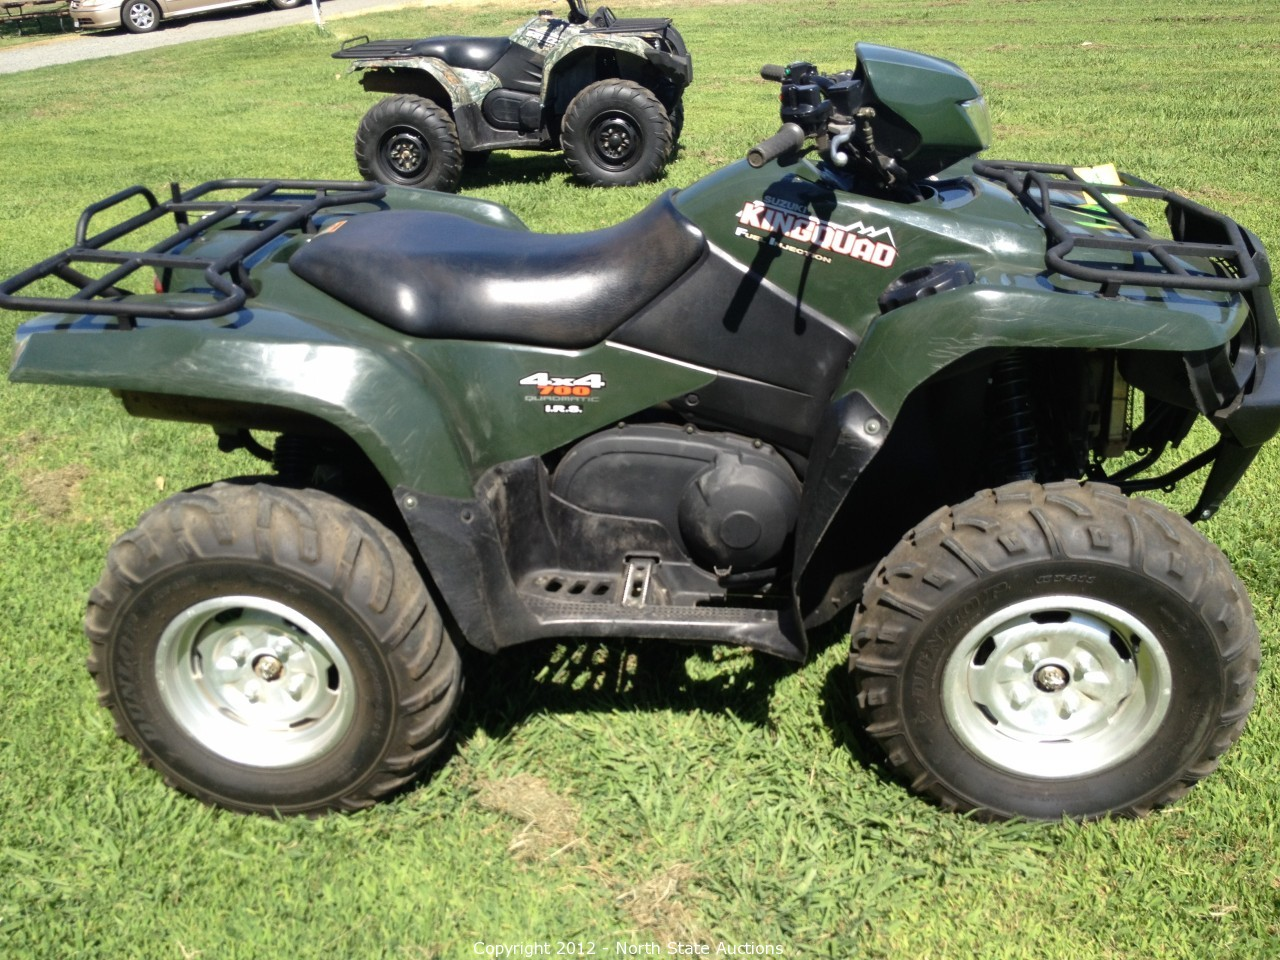 hight resolution of north state auctions auction consignment auction of atvs utvs motorcycles and trailers item 2005 suzuki king quad 700 4x4 fuel injected